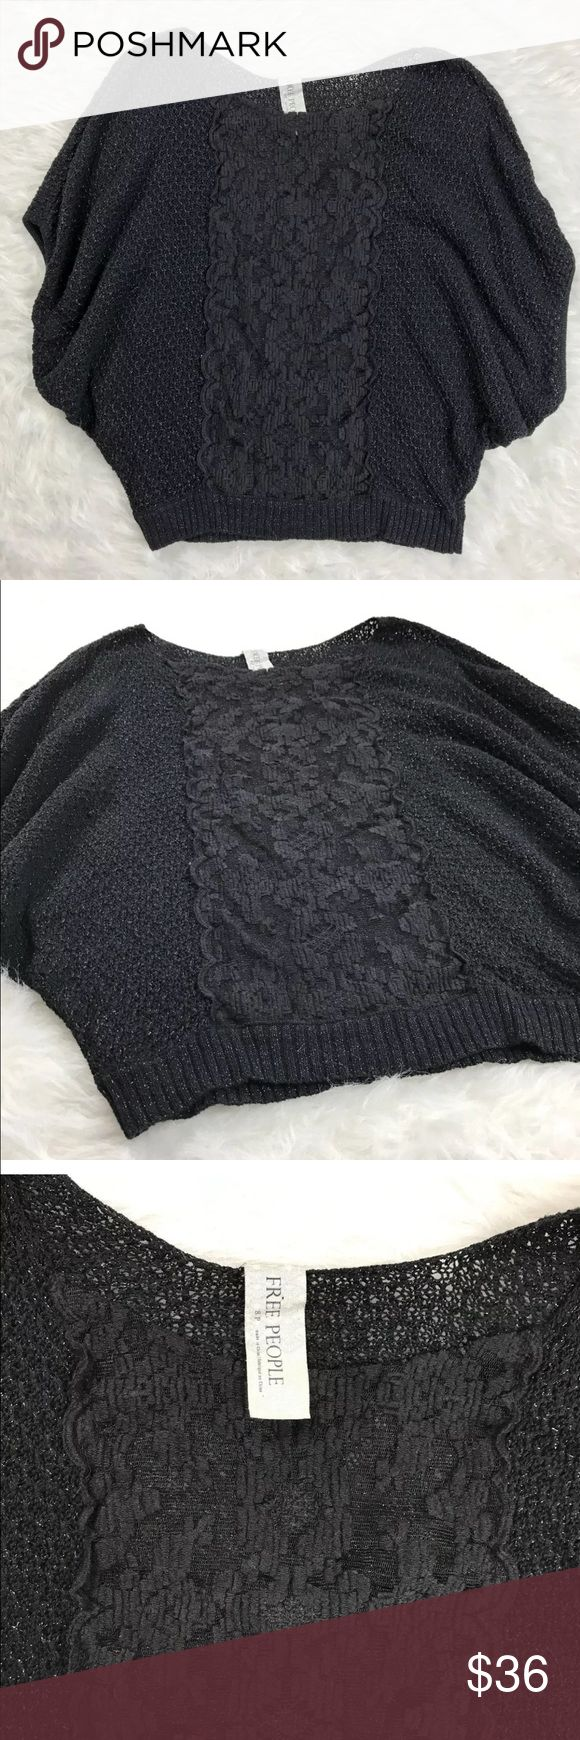 """💕Free People S Shimmer black sweater loose Knit Free People Black Lace Dolman short sleeve shimmer knit sweater.  Sweater is a loose knit with lace down the center front, a very pretty sweater. Size S  flay lay measurements  armpit to armpit 20"""" armpit to bottom 16"""" top to Bottom 23"""" all items from a smoke free home Free People Sweaters"""